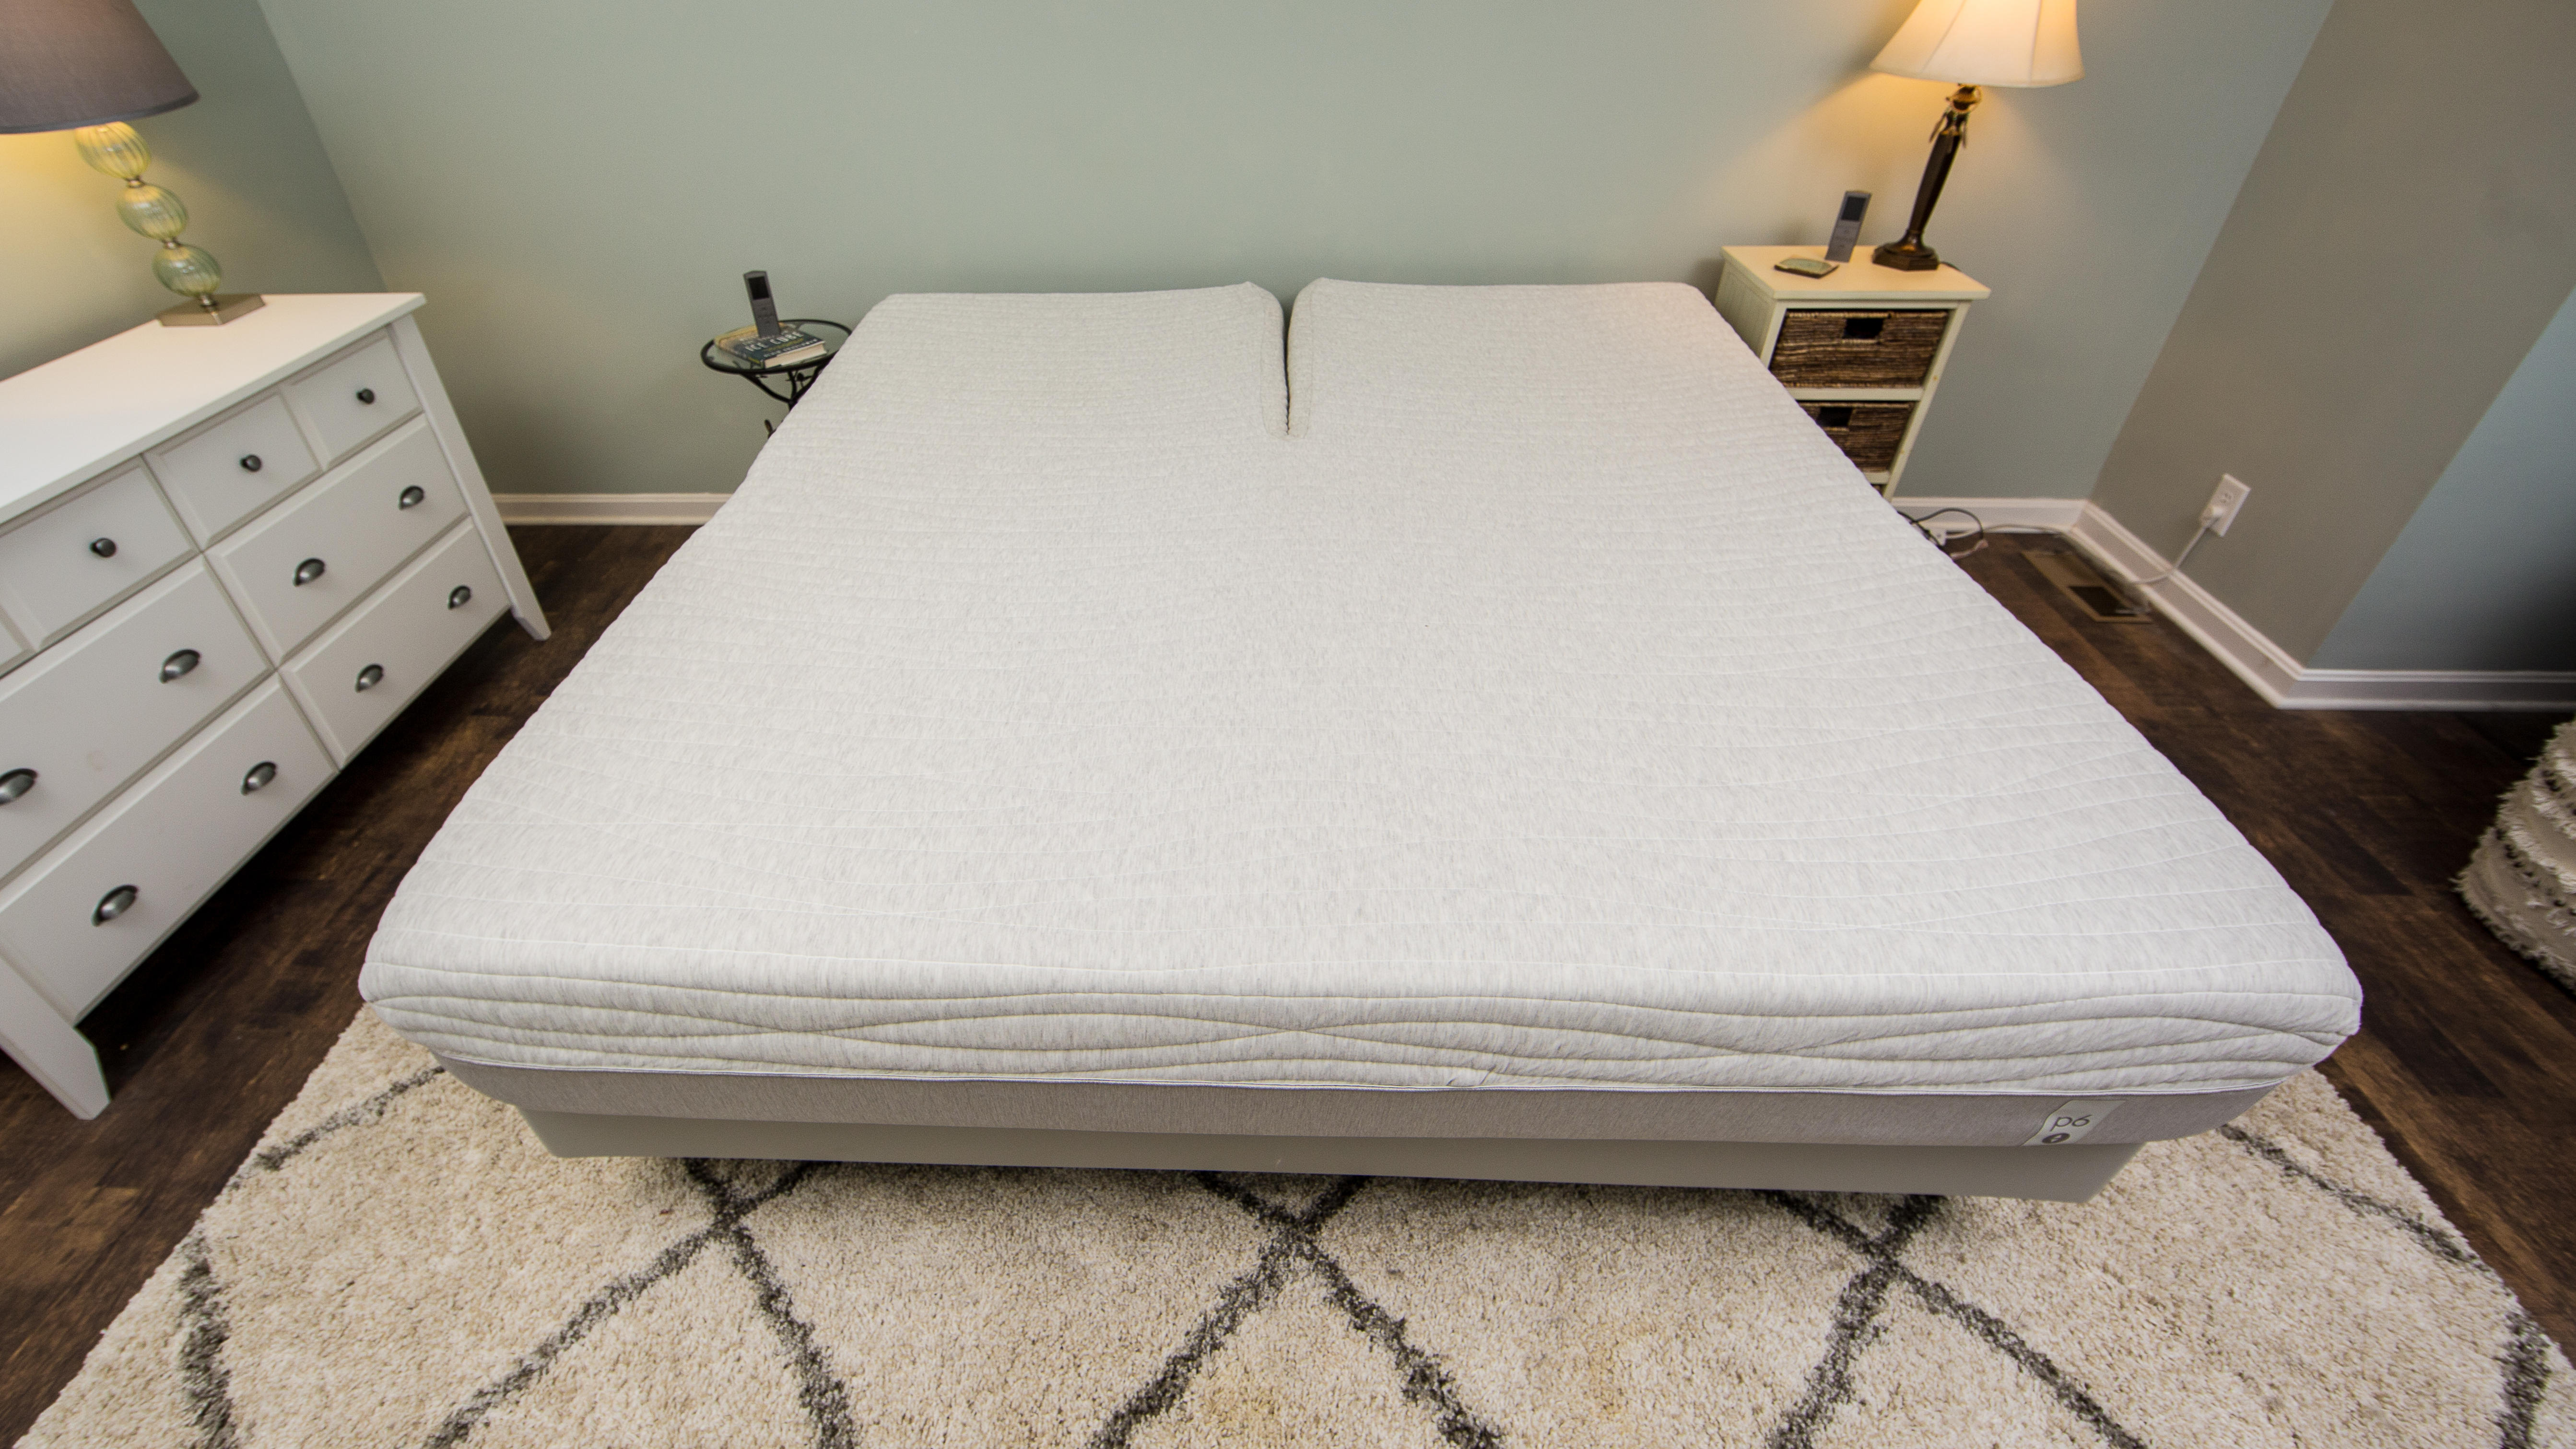 This 7 600 Smart Bed Isn T, How Much Is A King Sleep Number Smart Bed